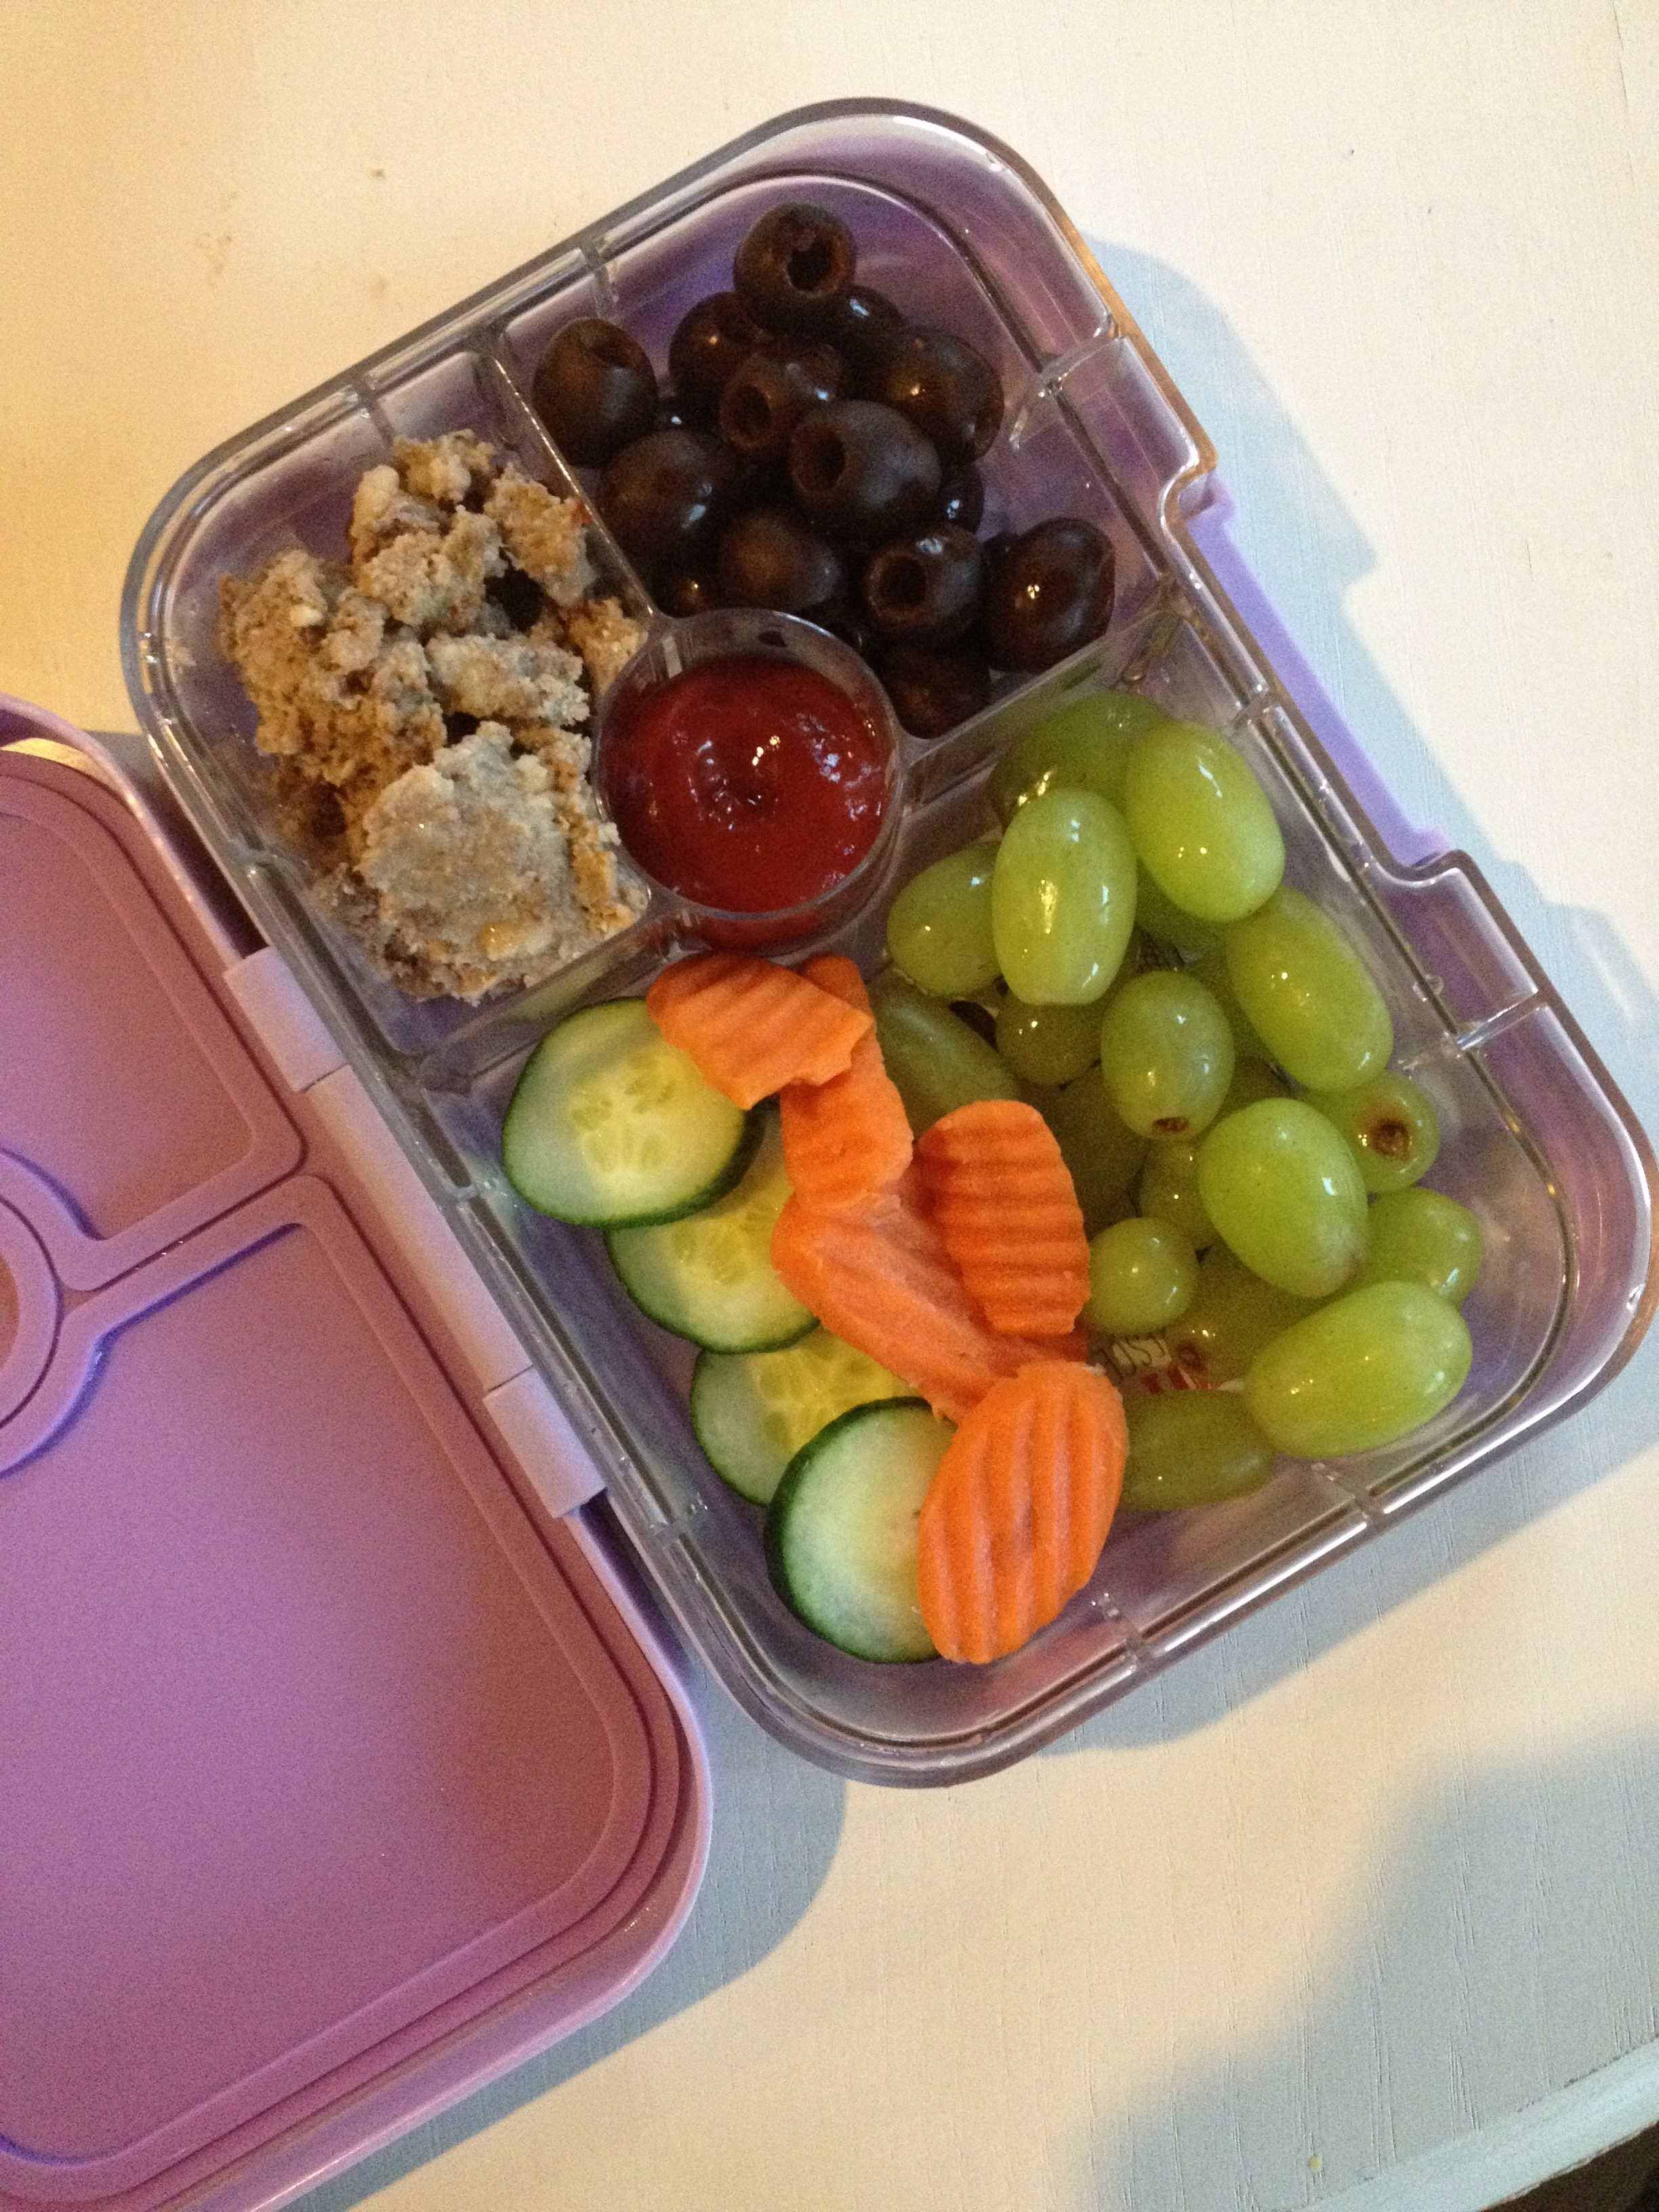 Leftover meatloaf, black olives, green grapes, cucumber and carrot slices. Always include ketchup. Ketchup is key to getting my baby to eat her meat